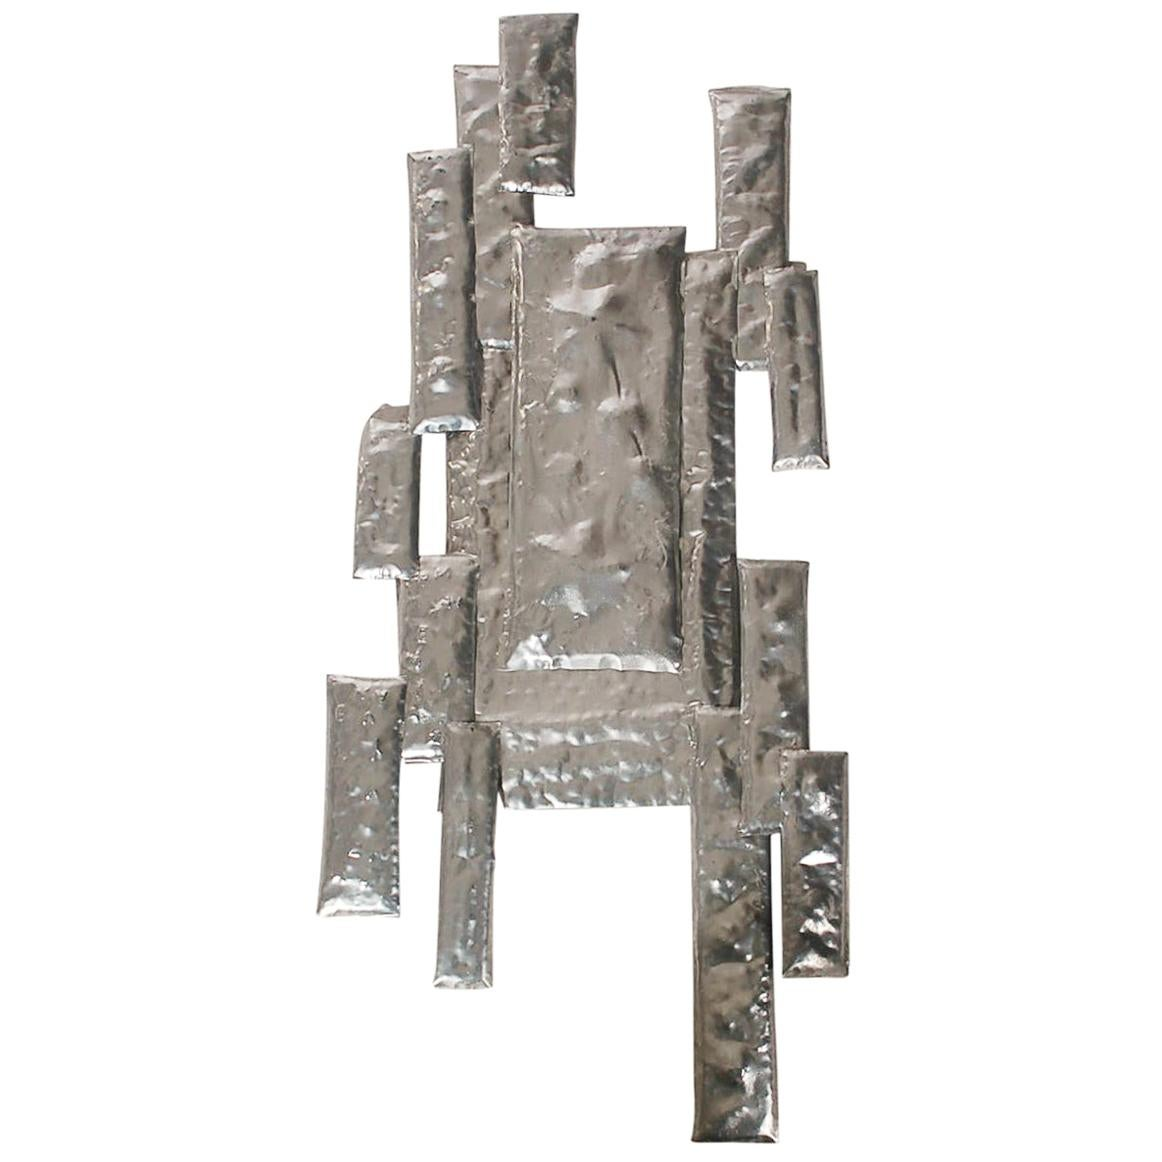 Mid-Century Modern Brutalist Abstract Metal Wall Sculpture after Curtis Jere